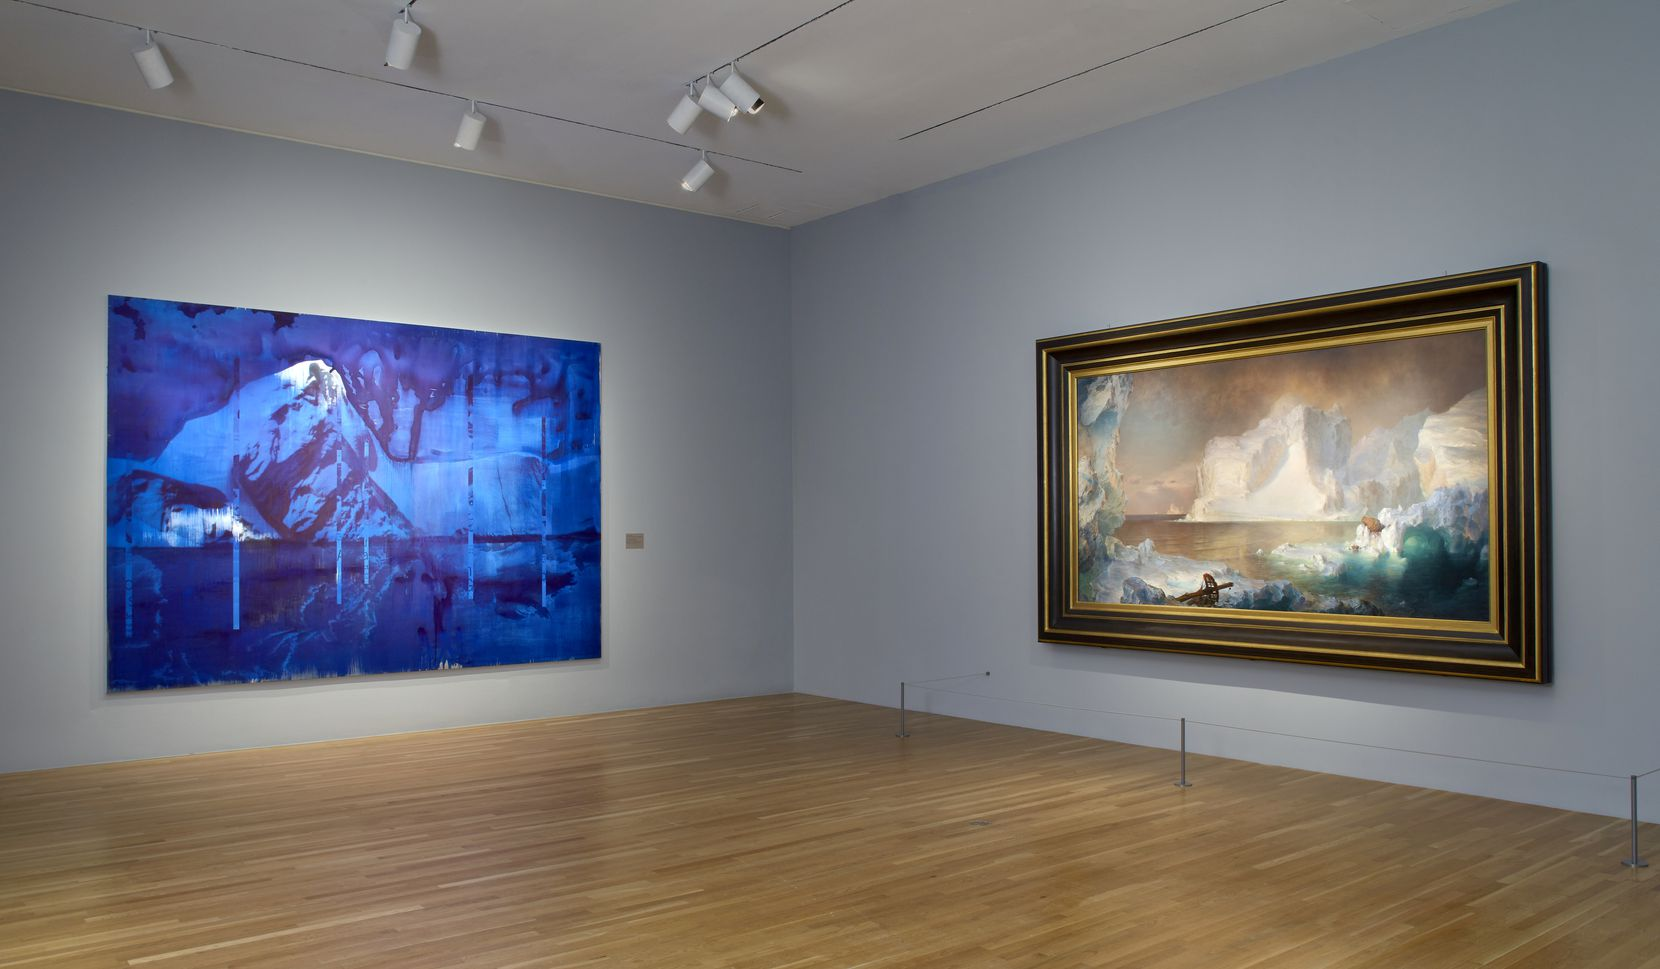 """The side-by-side pairing of Lorna Simpson's 2019 work """"Blue Turned Temporal"""" (left) with Frederic Edwin Church's beloved 1861 painting """"The Icebergs"""" is among the unlikely connections in the Dallas Museum of Art's """"To Be Determined"""" exhibition. Despite all the differences of style and historical context, the implacable force of nature comes through in both works."""